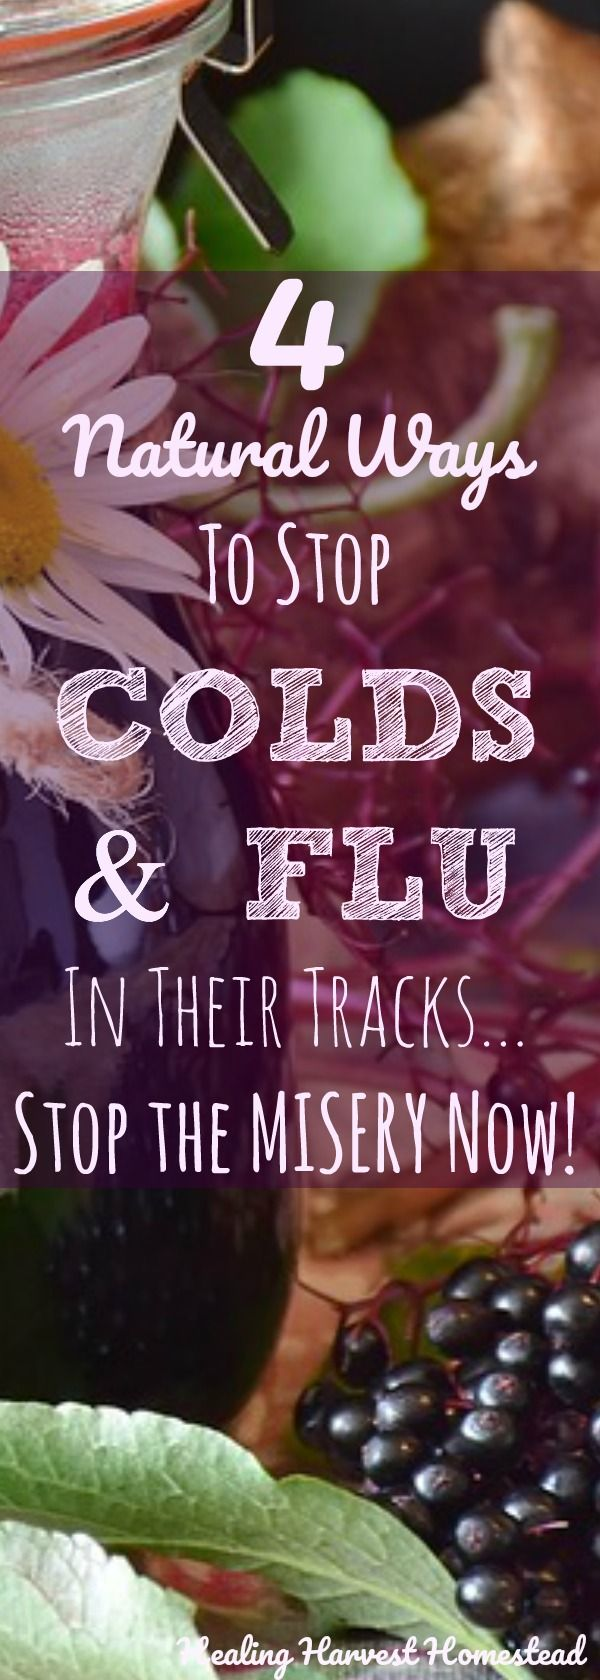 We all get sick from time to time. Sometimes it is just inevitable that you're going to get a cold or flu started in your body. So what to do? There are natural ways you can get rid of a cold or flu super fast if you just know what to do and do them right away, before that illness starts causing some real misery. Find out  how to get rid of a cold or flu quickly and naturally using herbs!